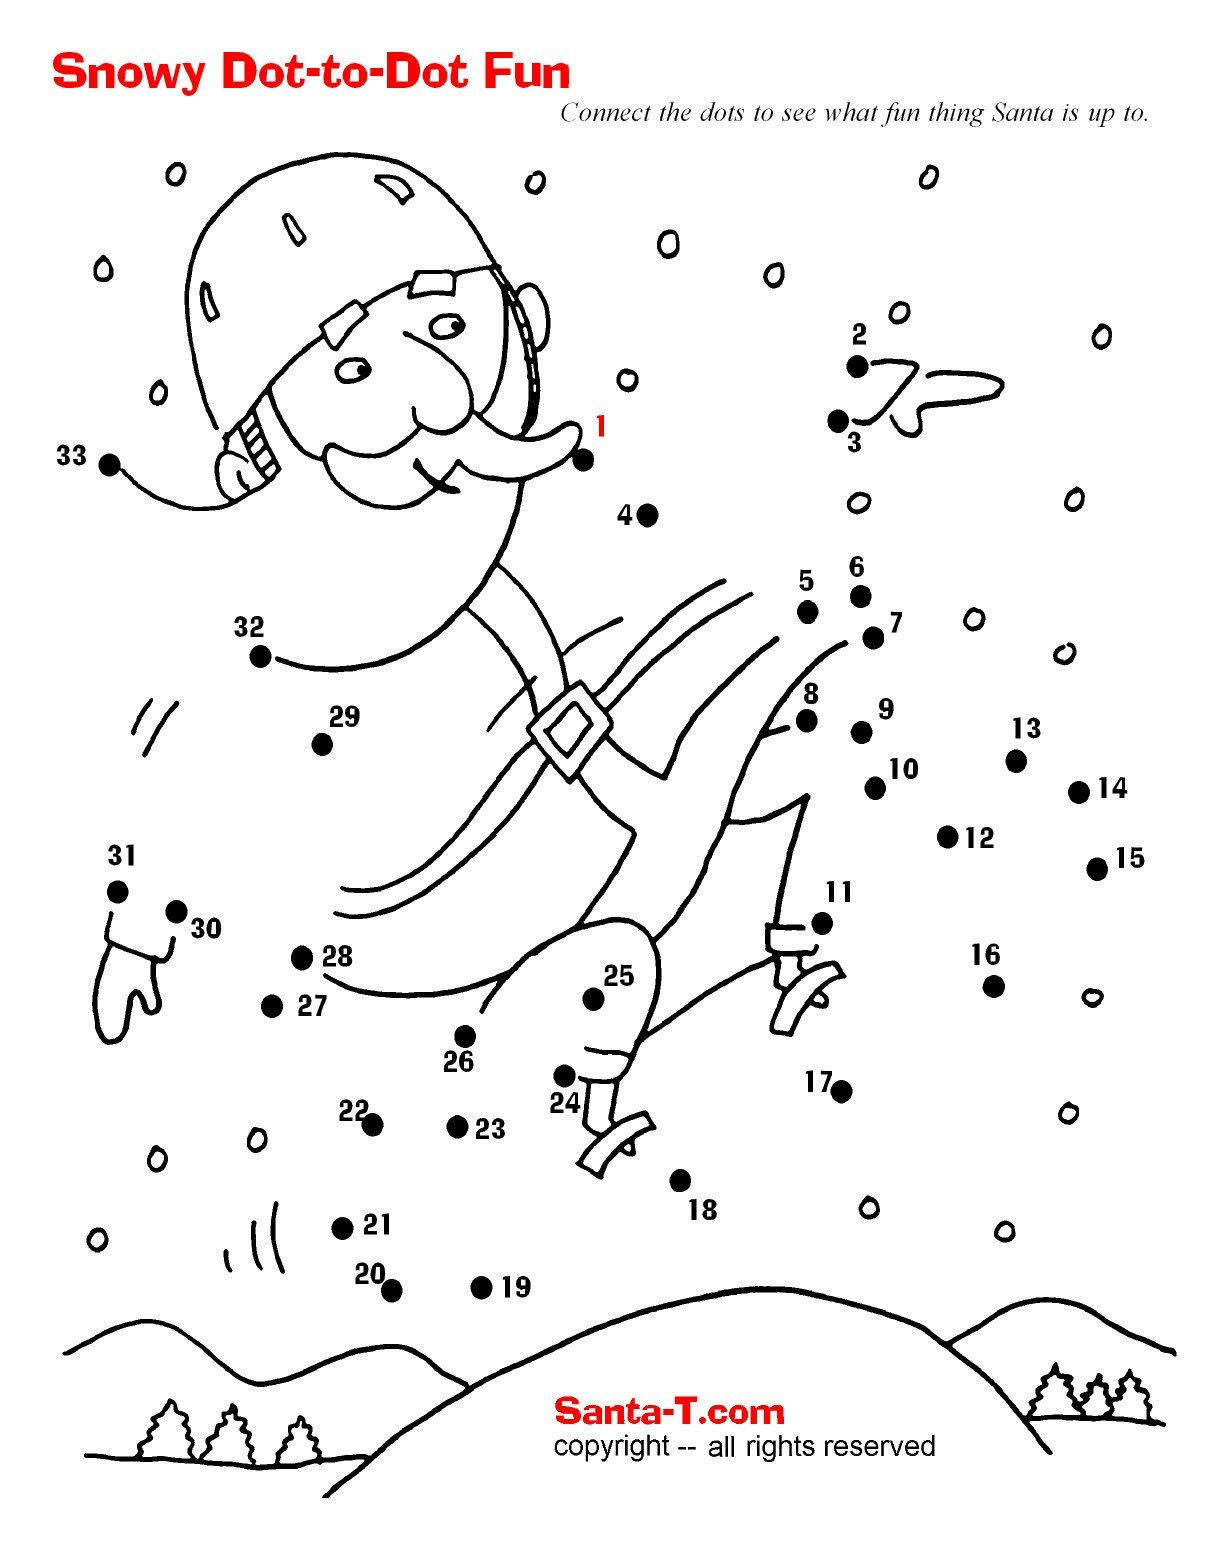 Christmas Connect the Dots Printables Snowboarding Santa Dot to Dot